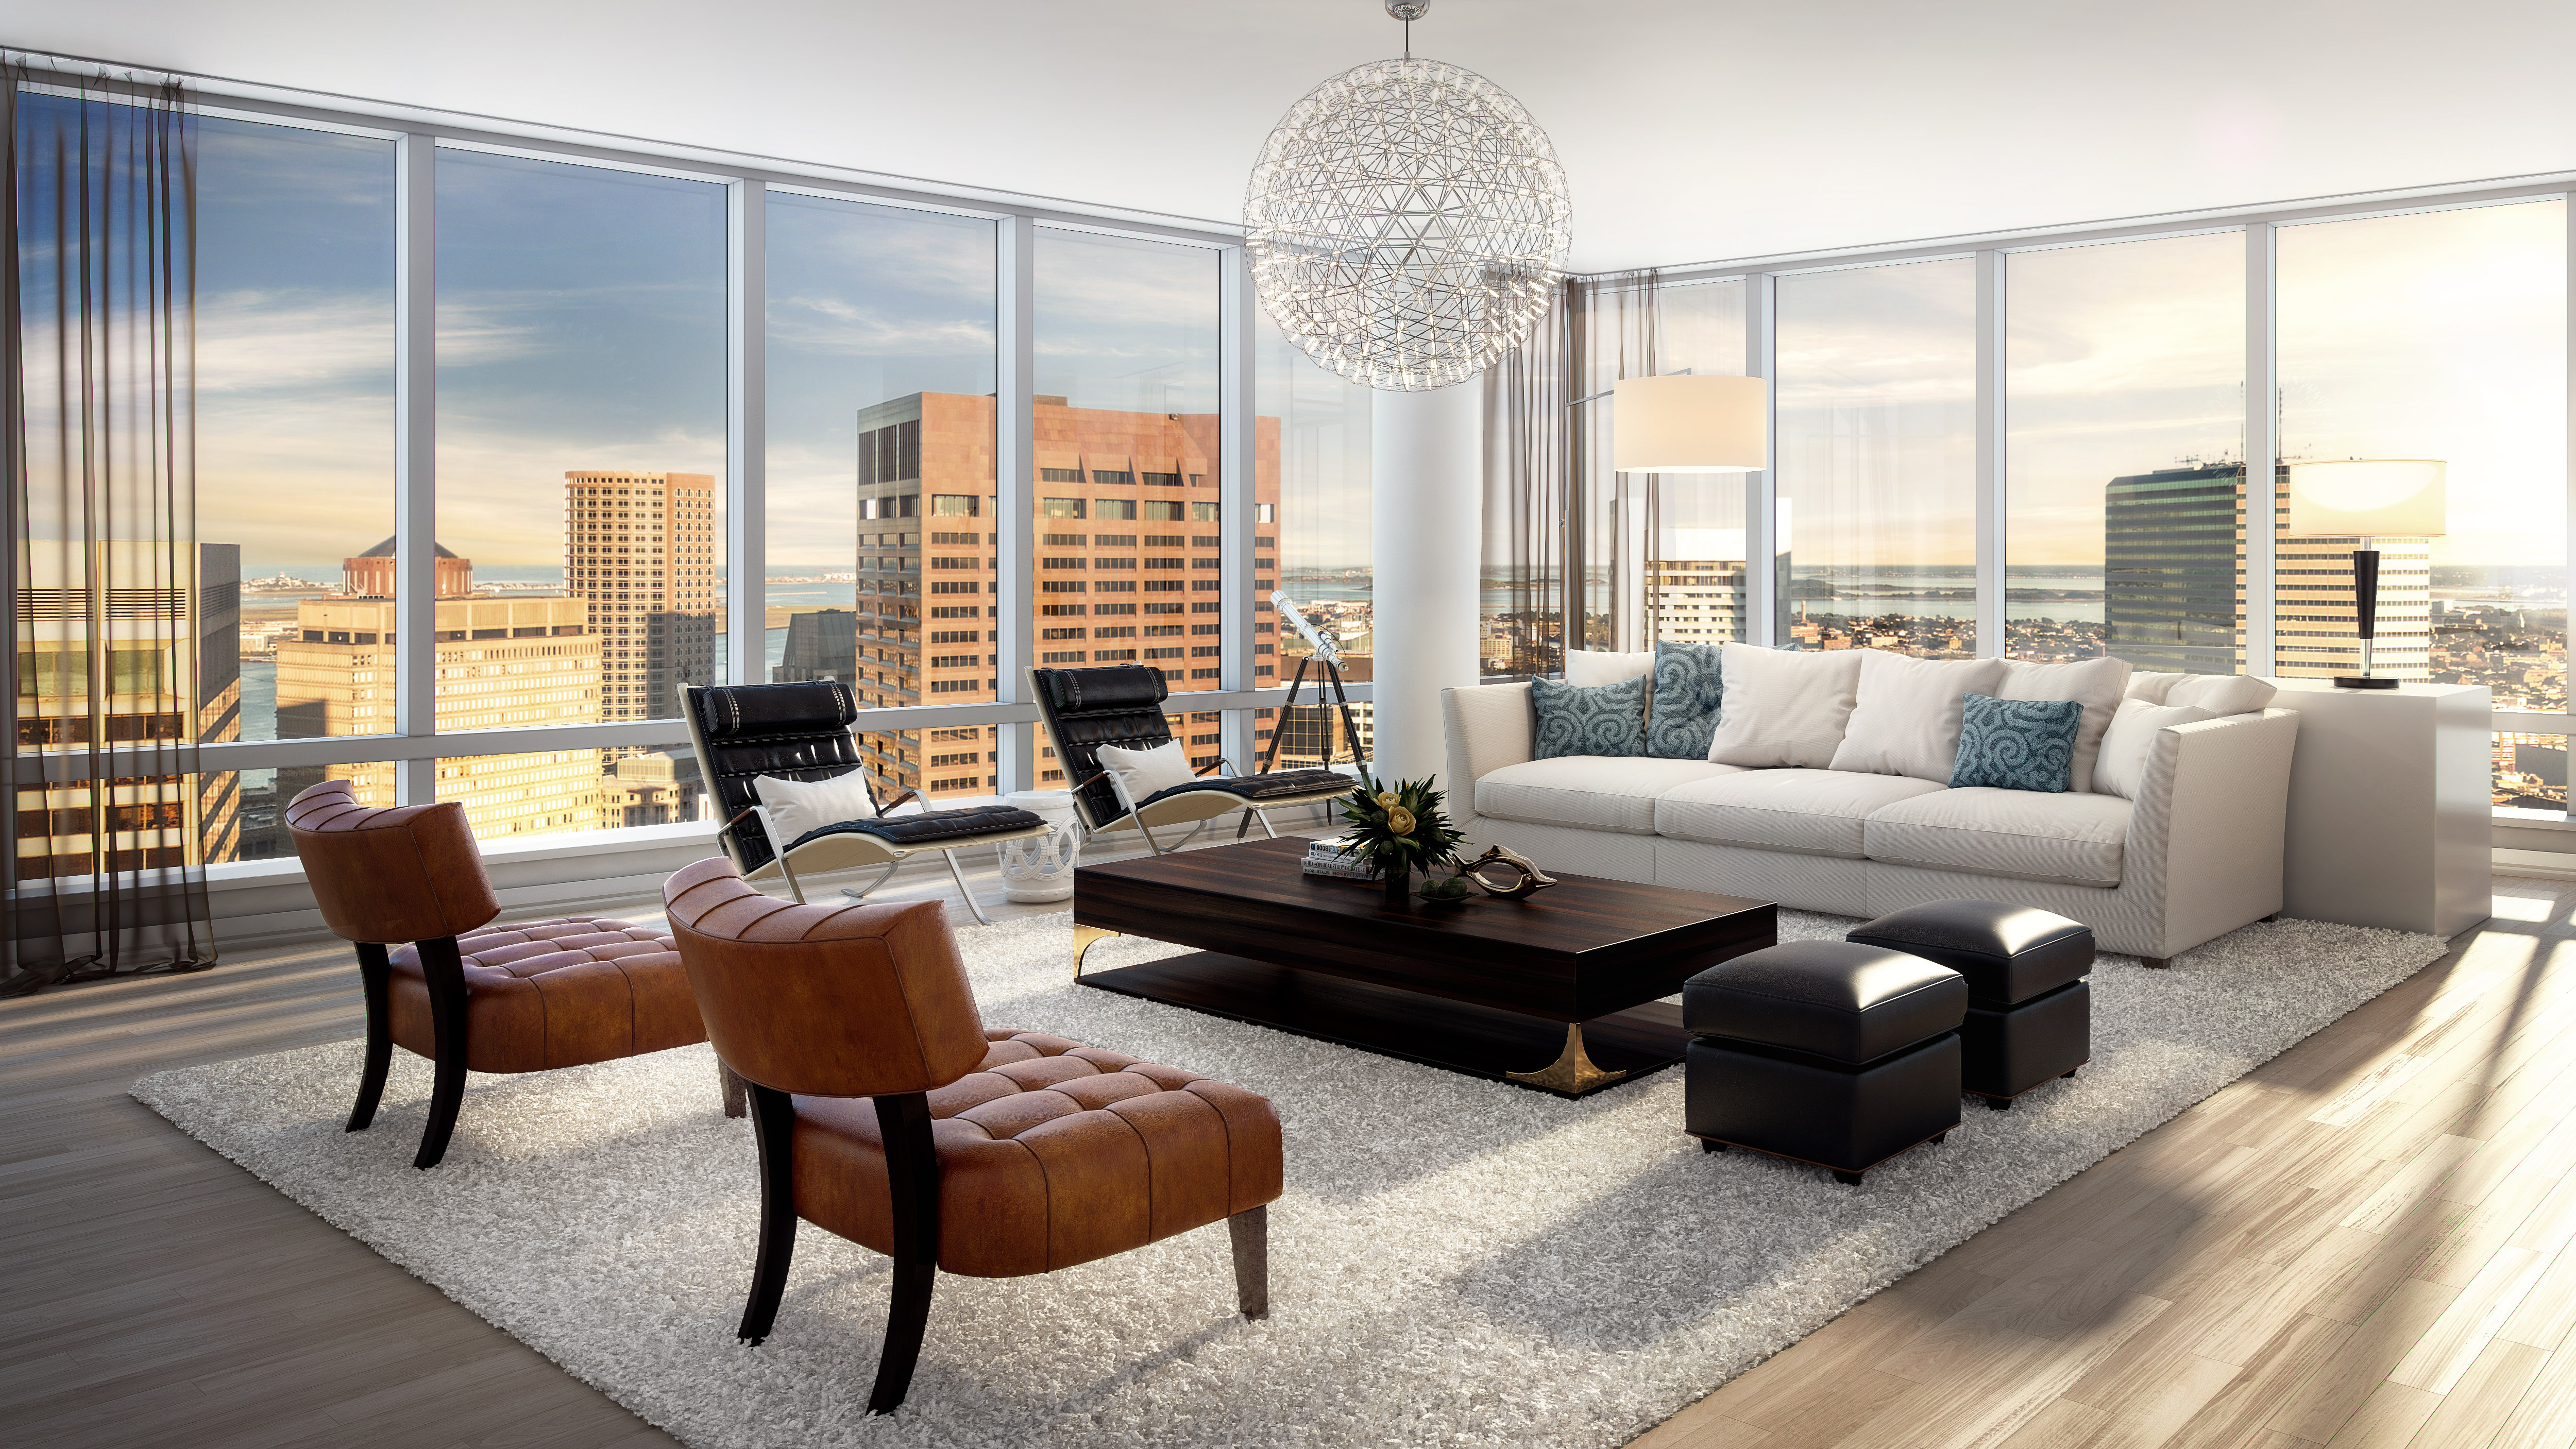 Condo Buildings For Sale In Boston